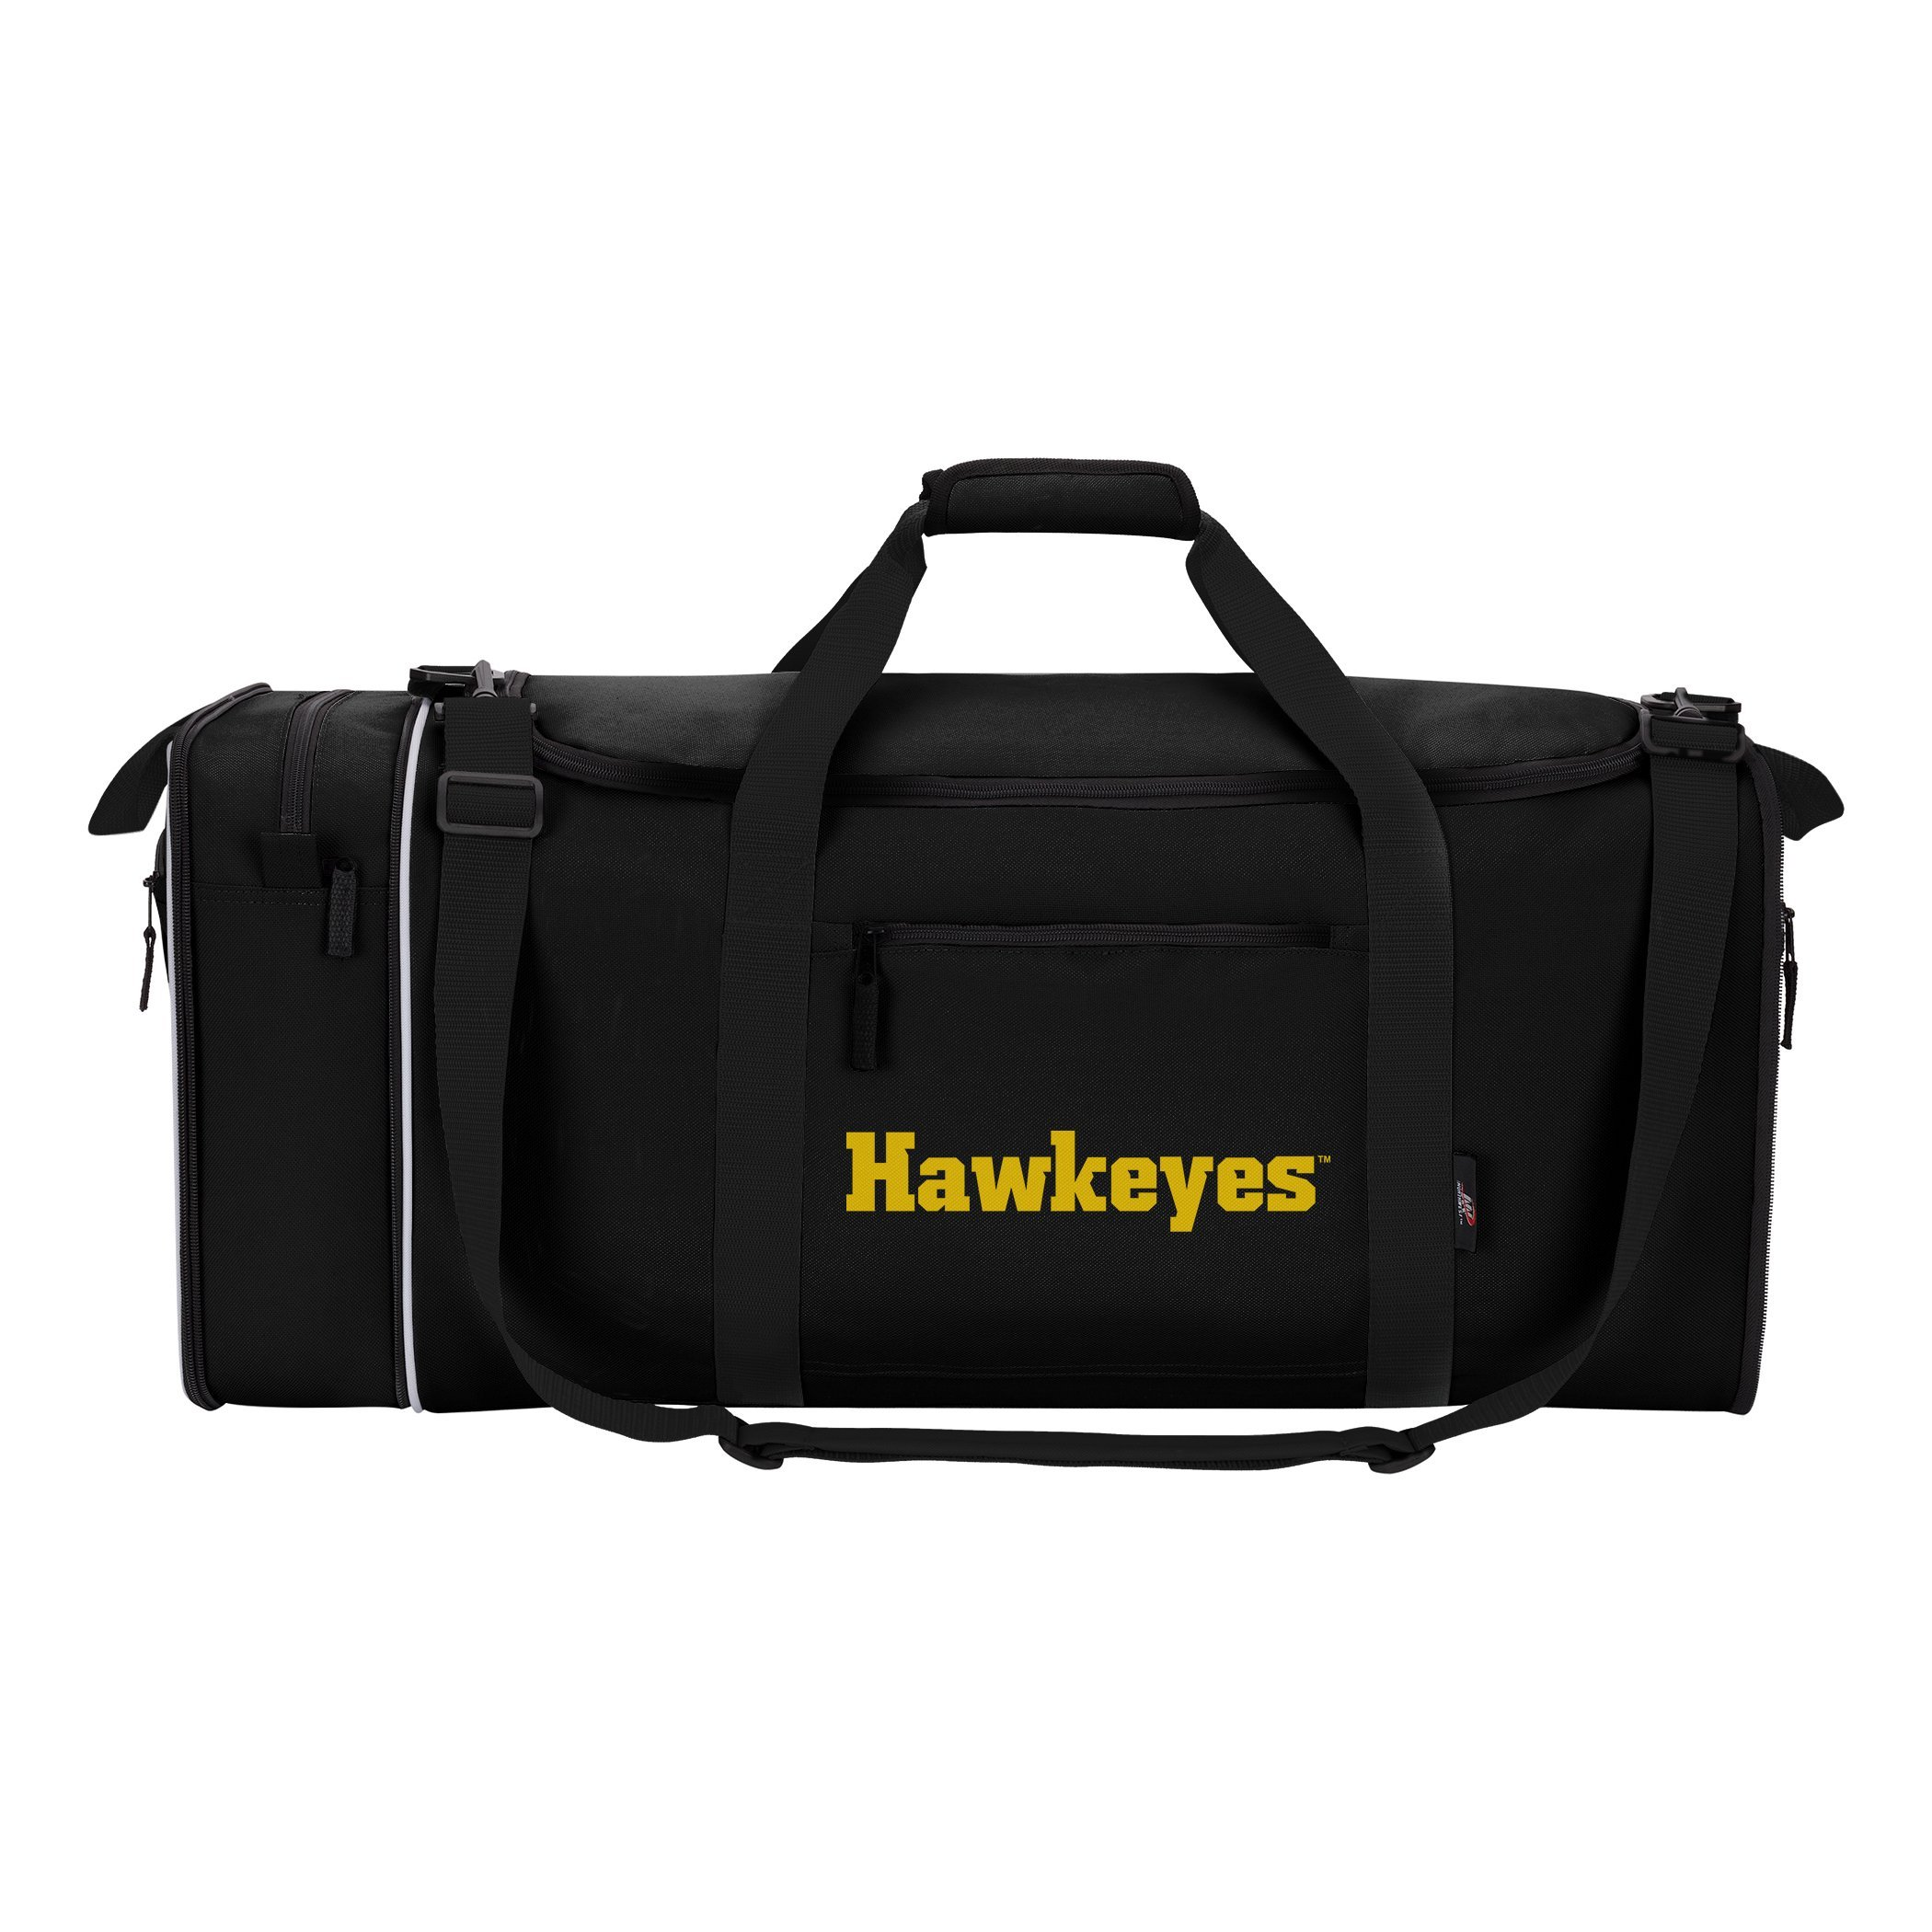 Officially Licensed NCAA Iowa Hawkeyes Steal Duffel Bag by The Northwest Company (Image #1)